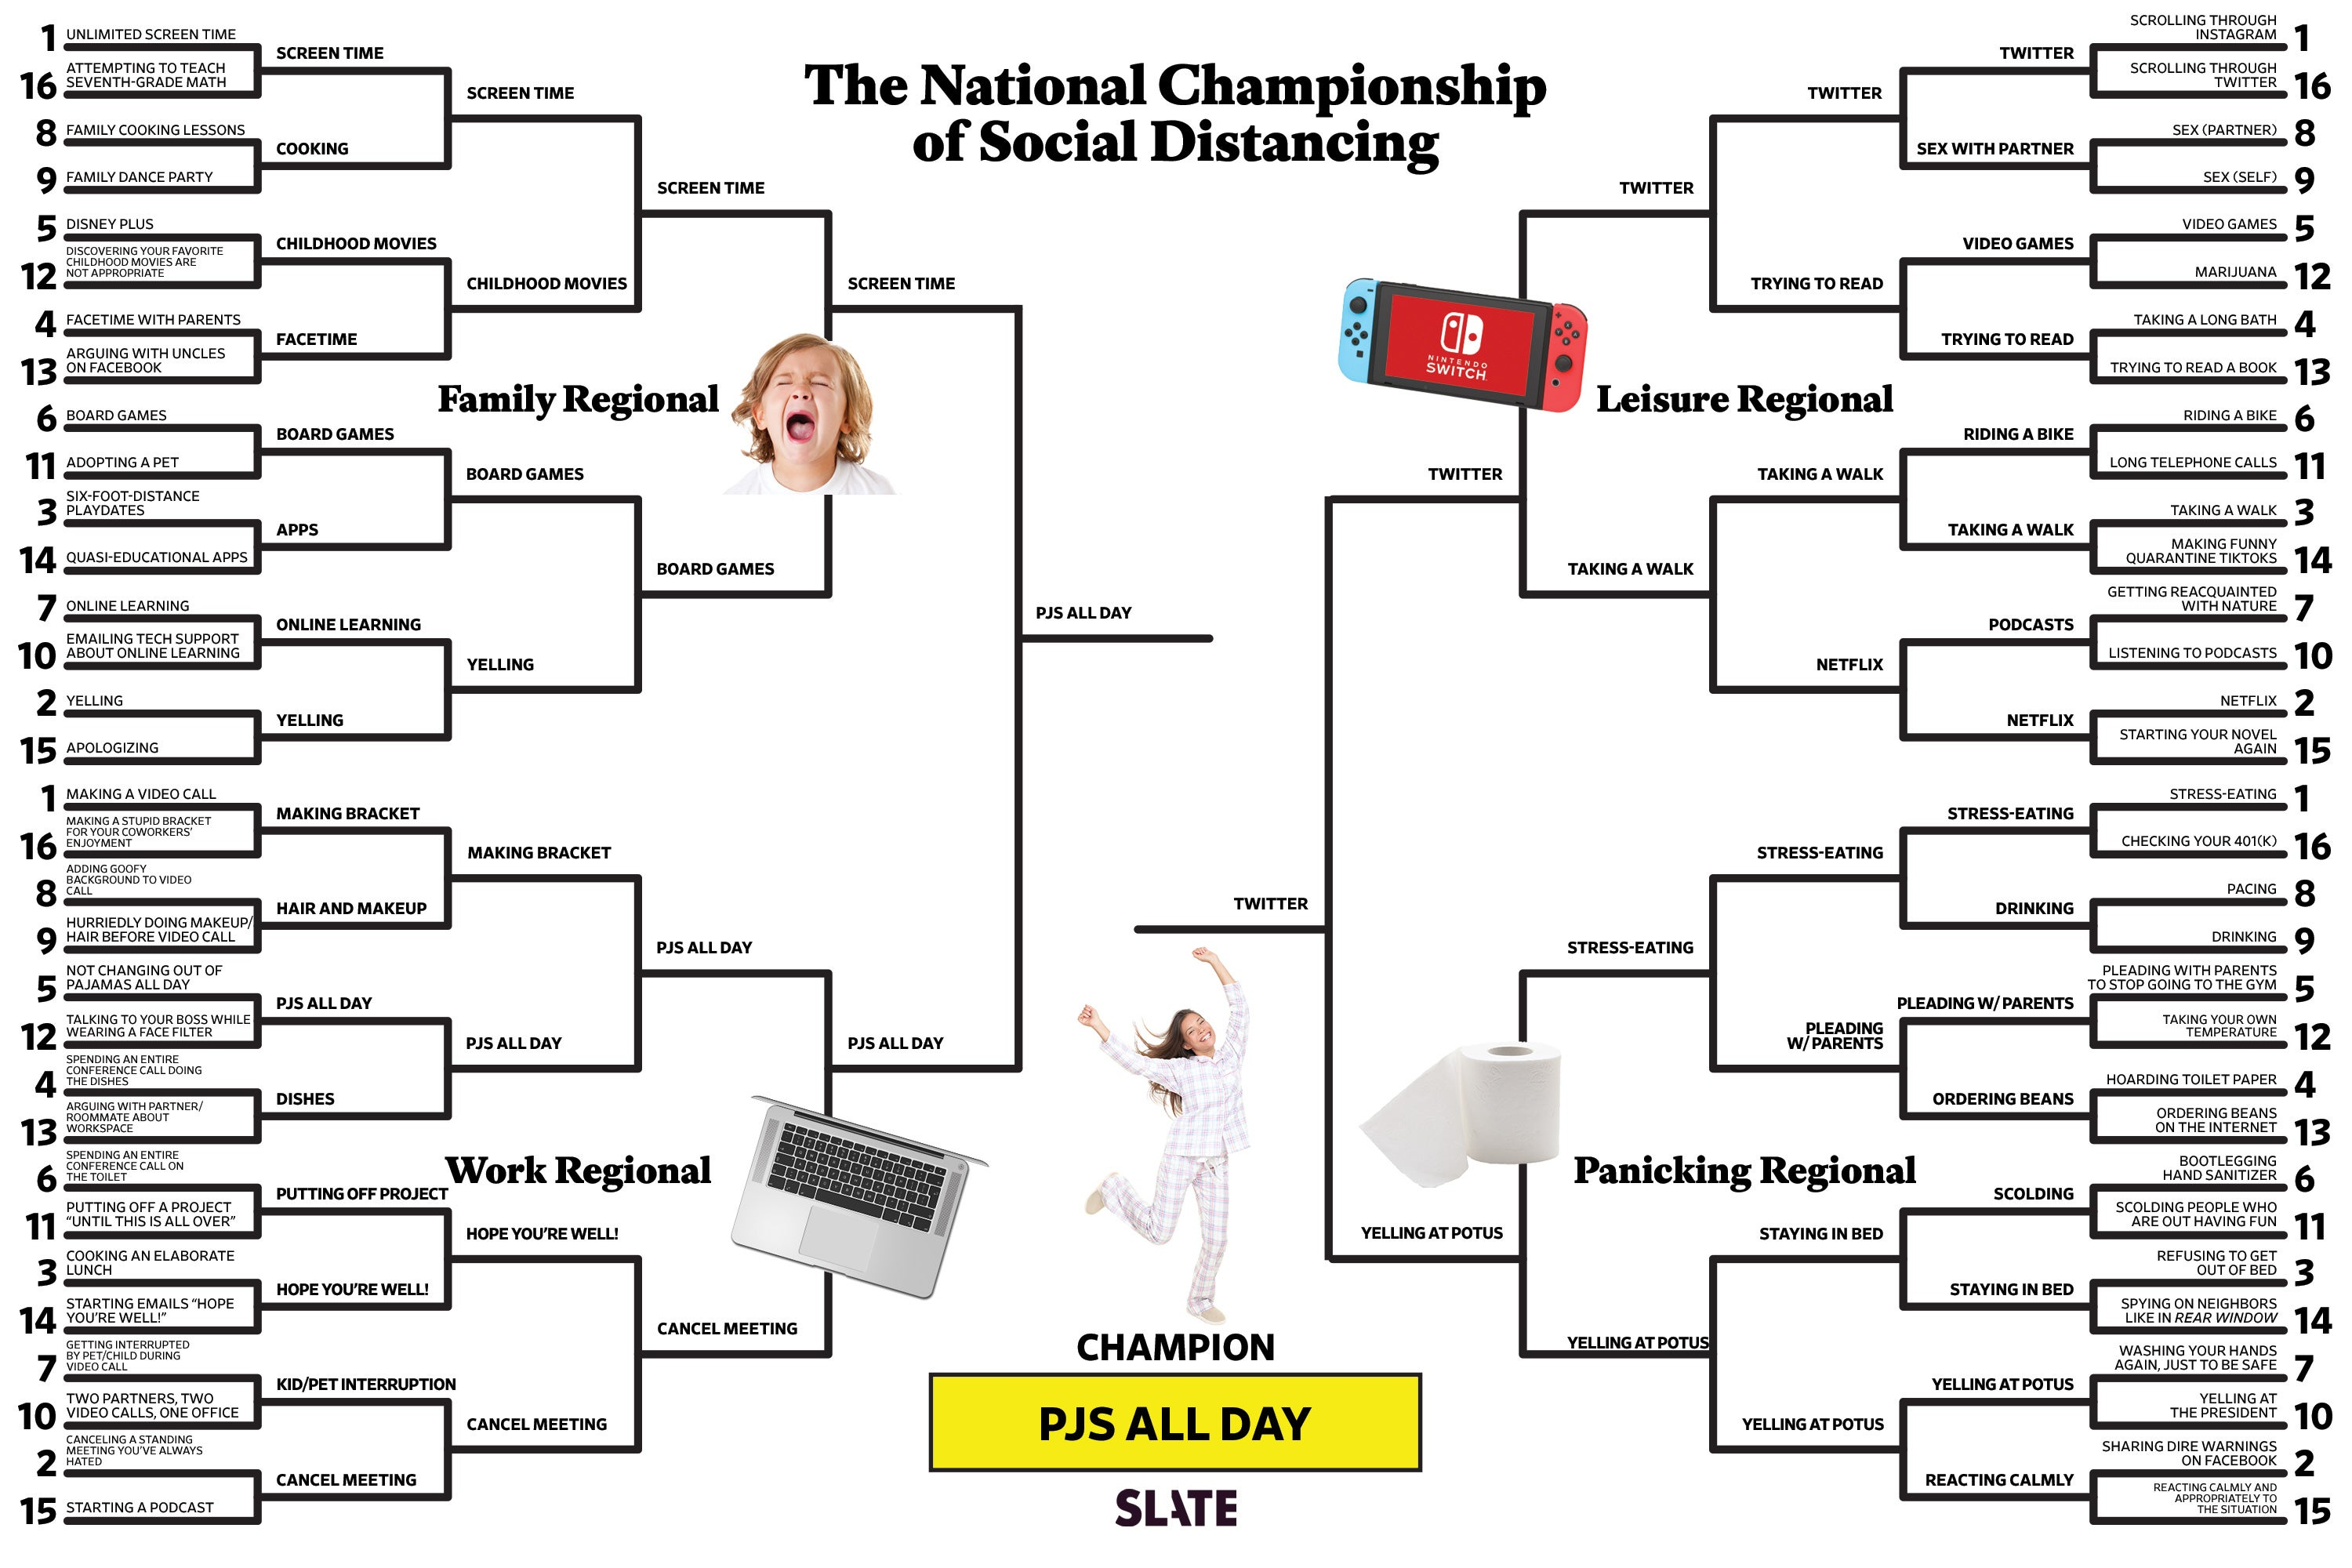 The full The National Championship of Social Distancing bracket, featuring the Family Regional, the Leisure Regional, the Work Regional, and the Panicking Regional.